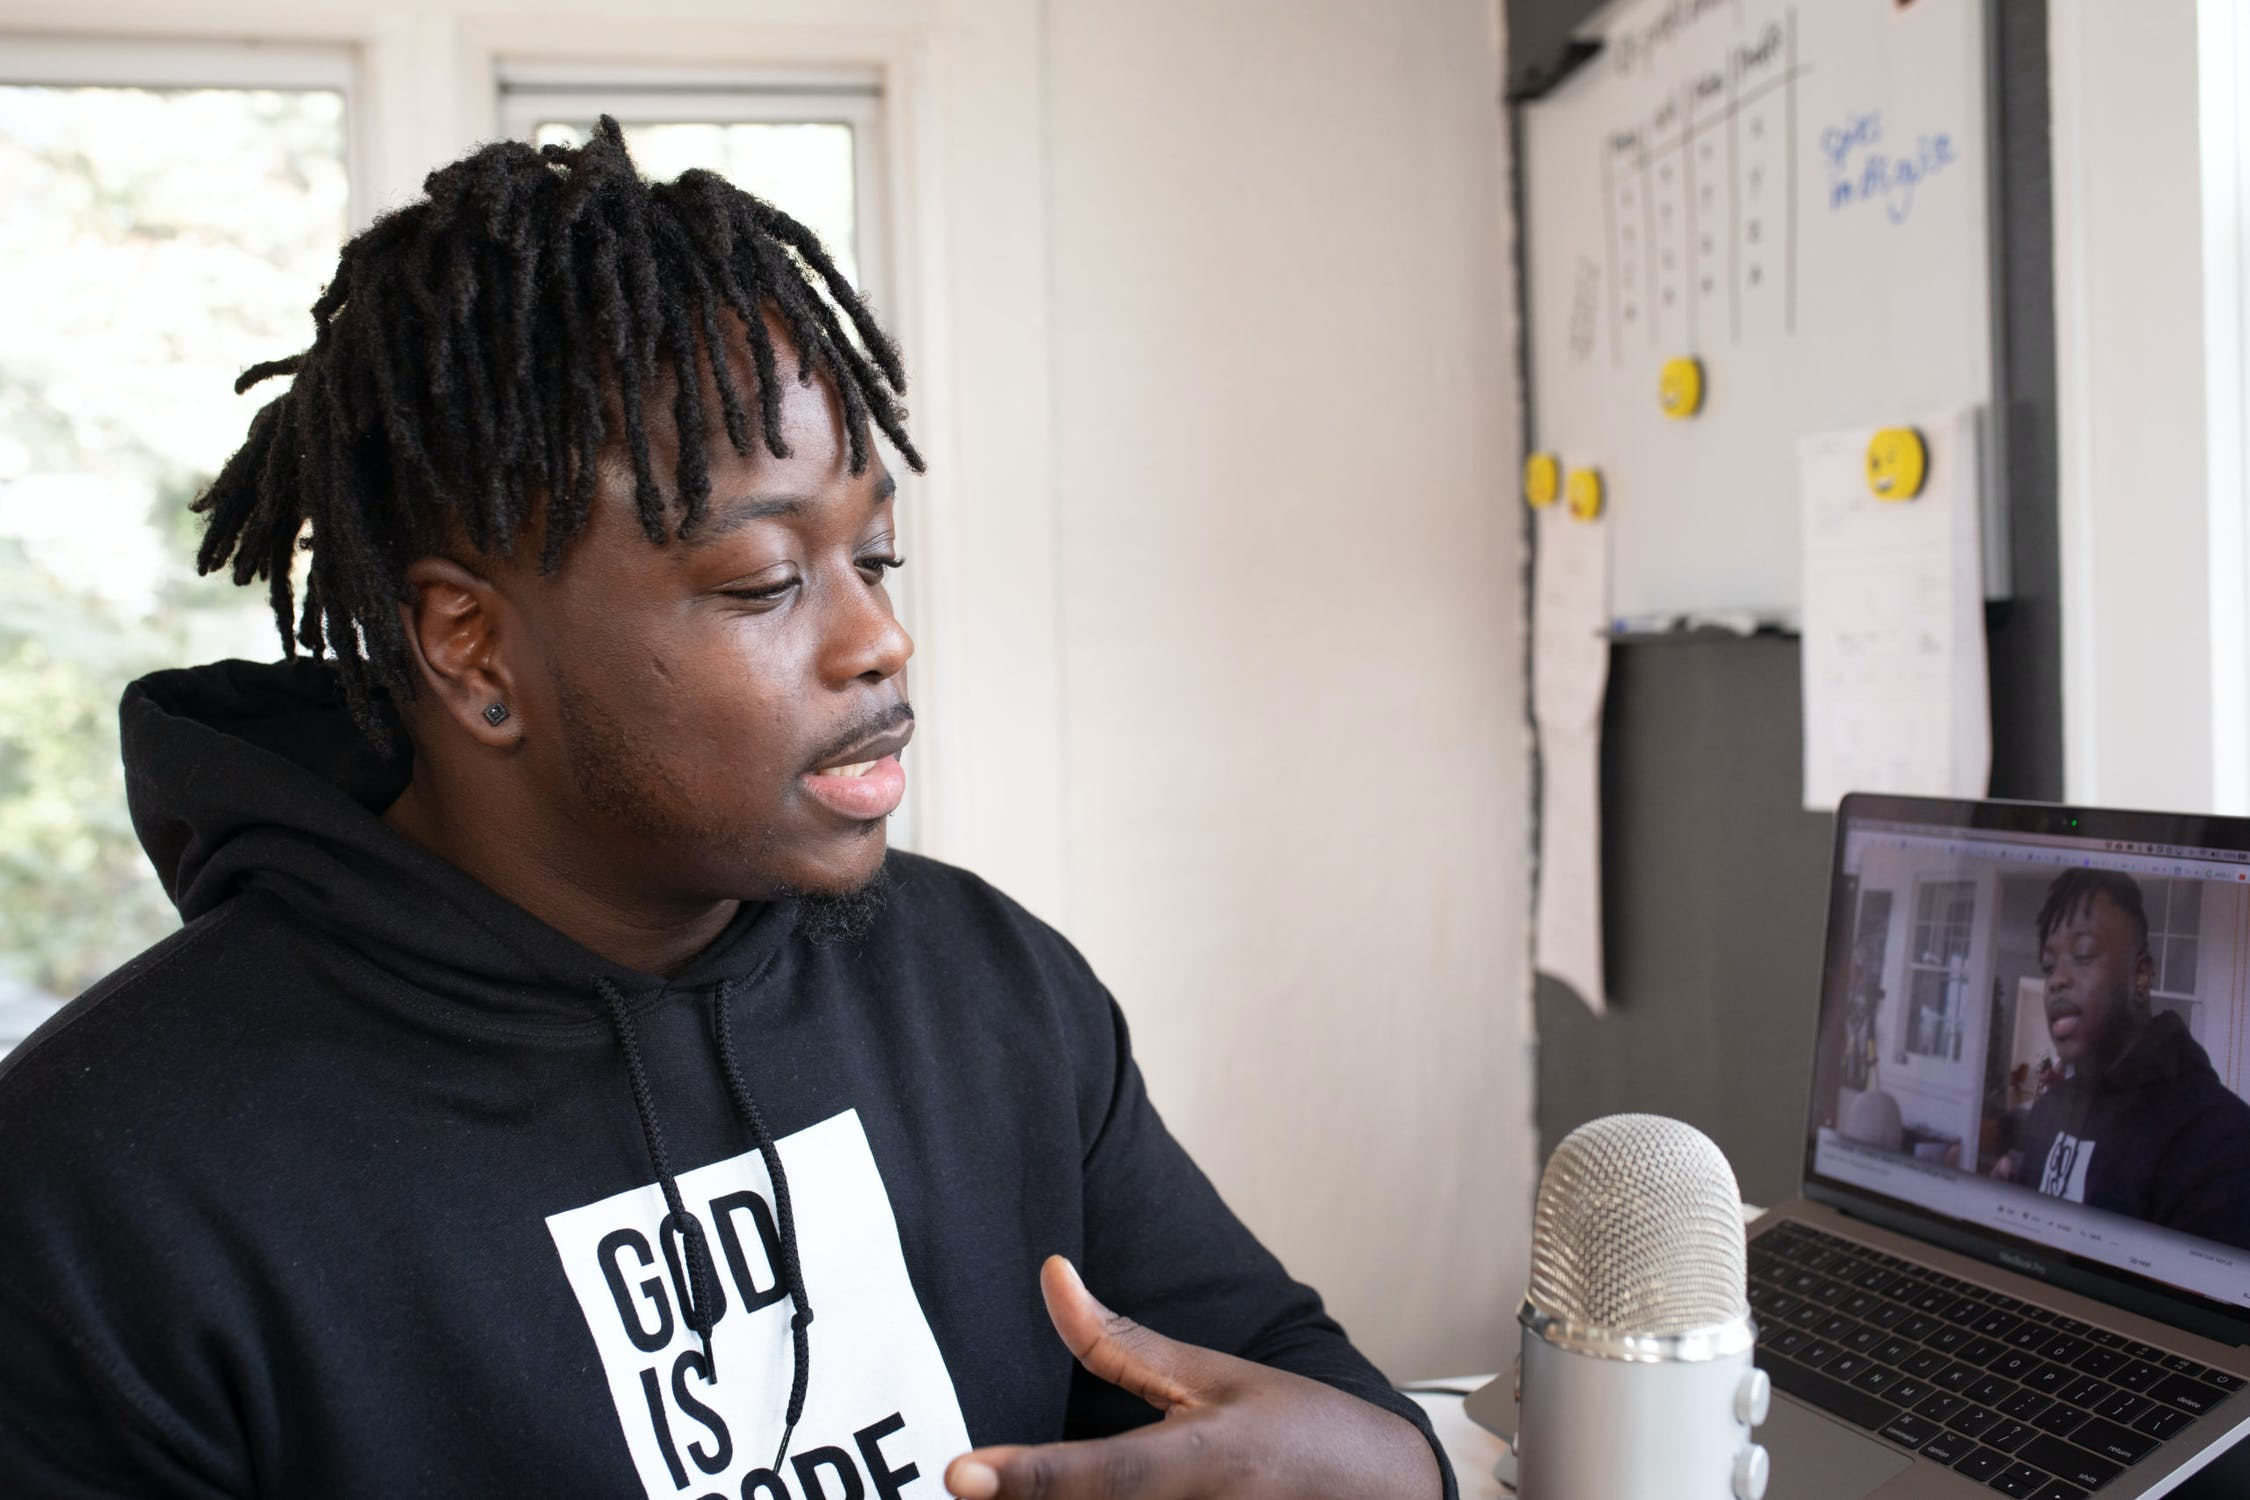 Man wearing black top speaking into a micrphone recording a podcast for his marketing strategy